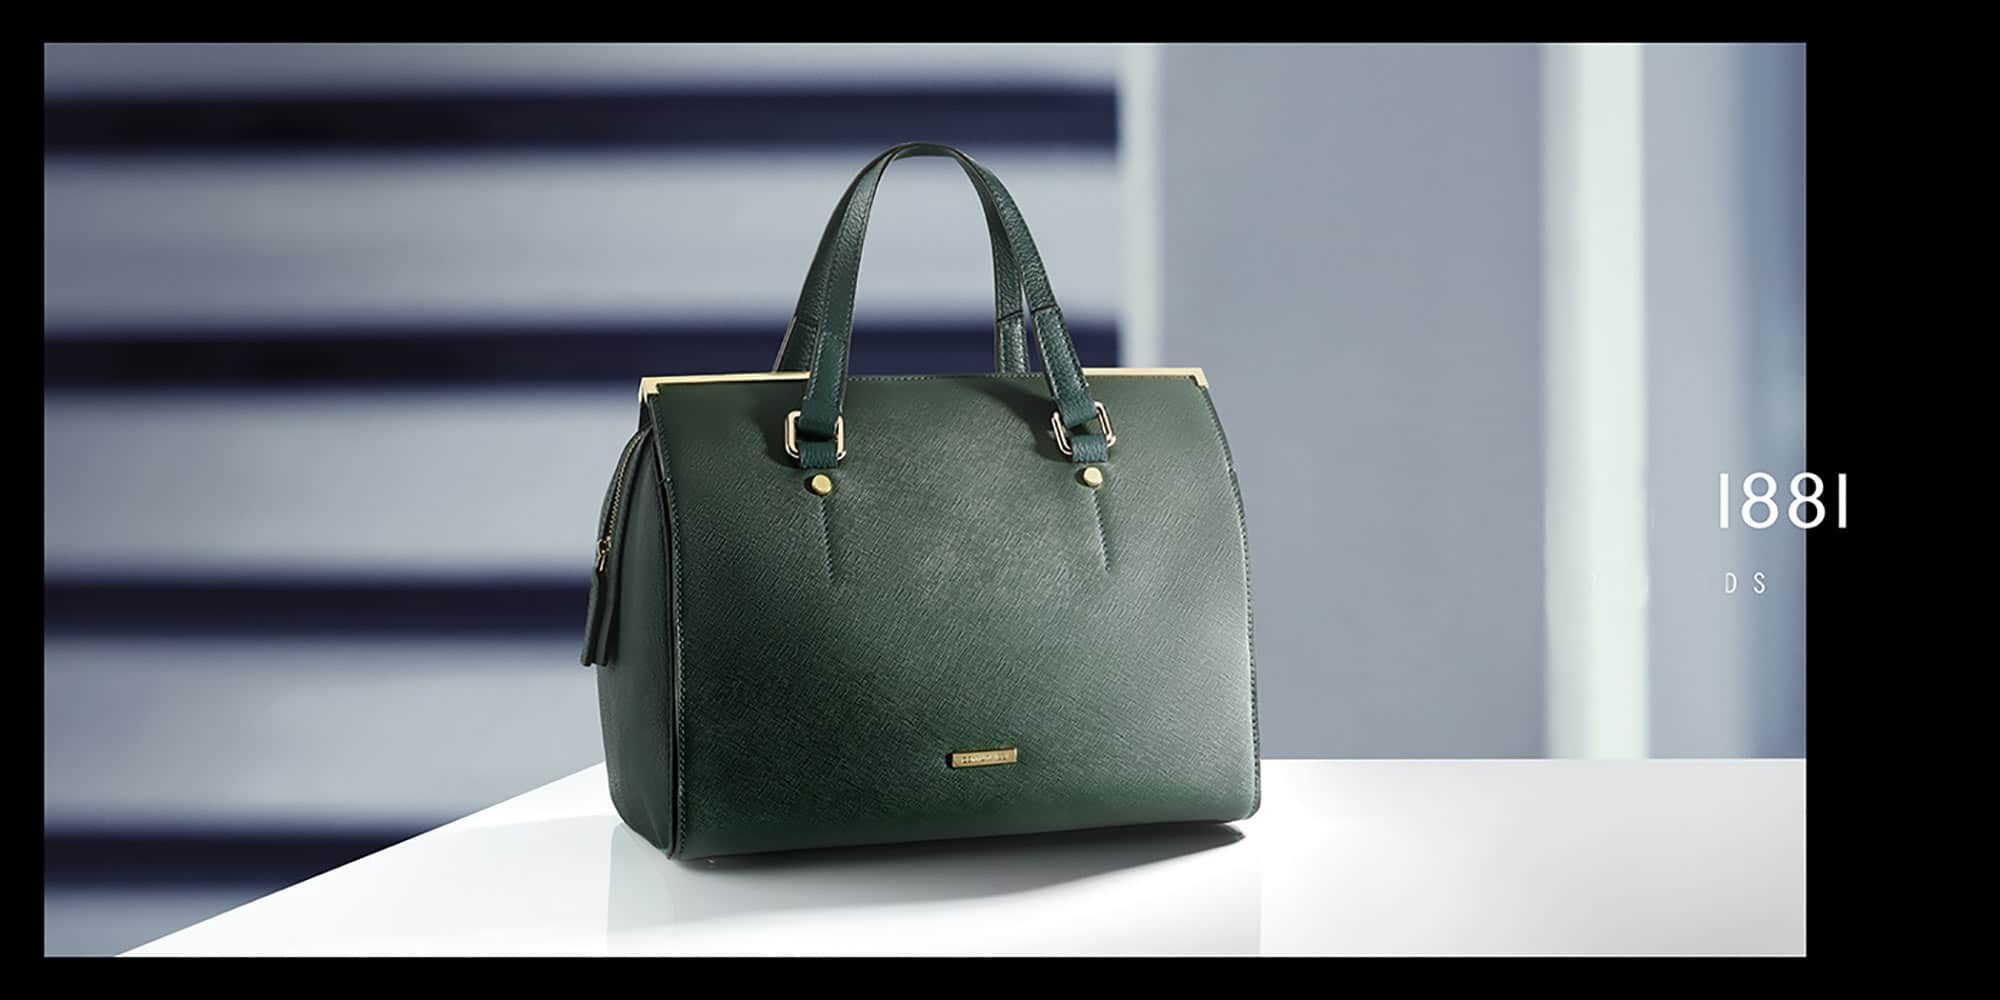 Green Bag Still Life Shot for Cerruti by Fotografando